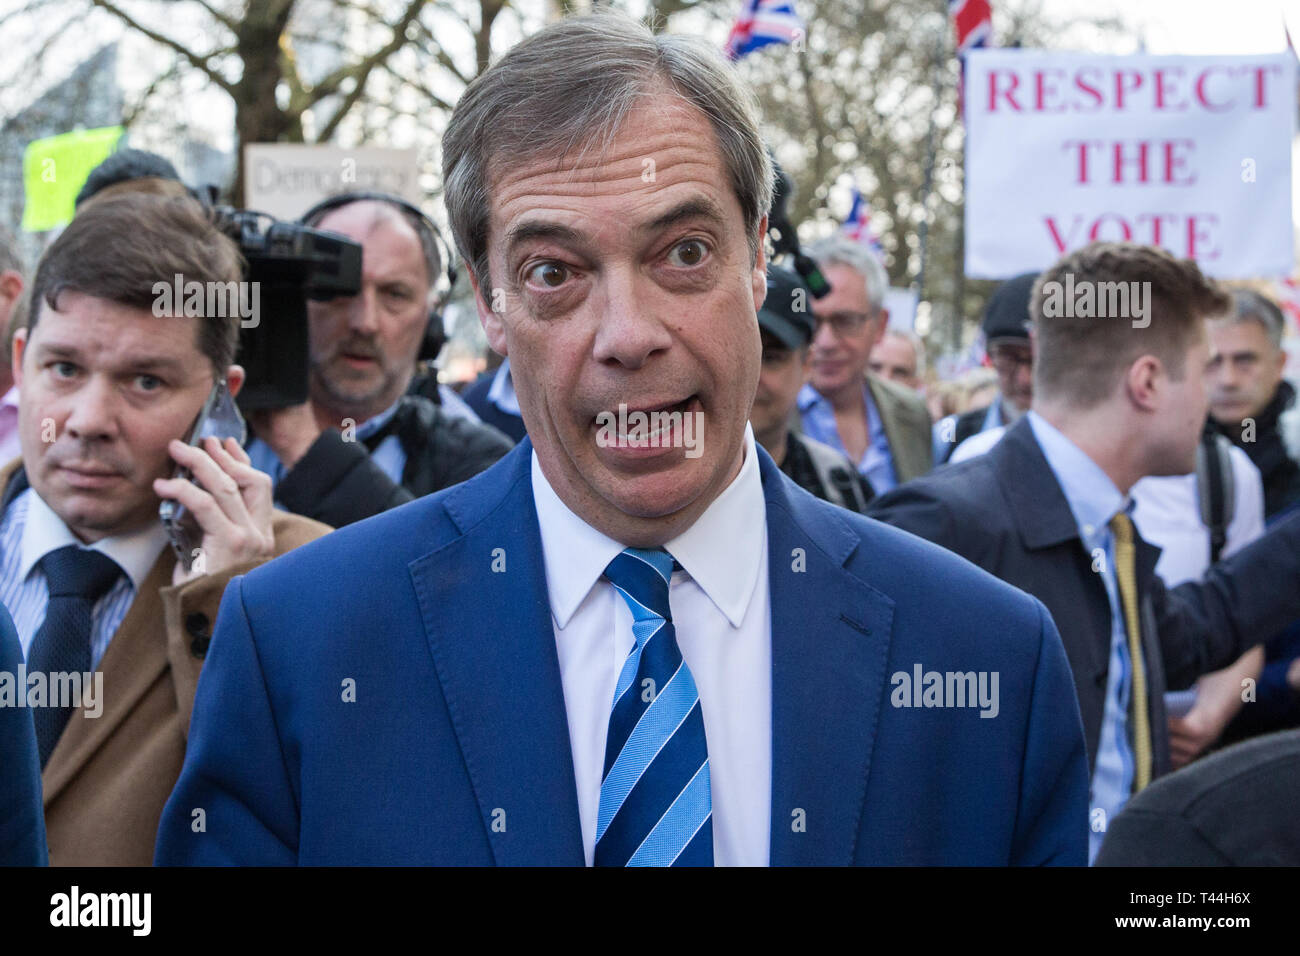 London, UK. 29th March, 2019. Nigel Farage joins pro-Brexit activists from Leave Means Leave on the final leg of the March to Leave on the day on whic - Stock Image